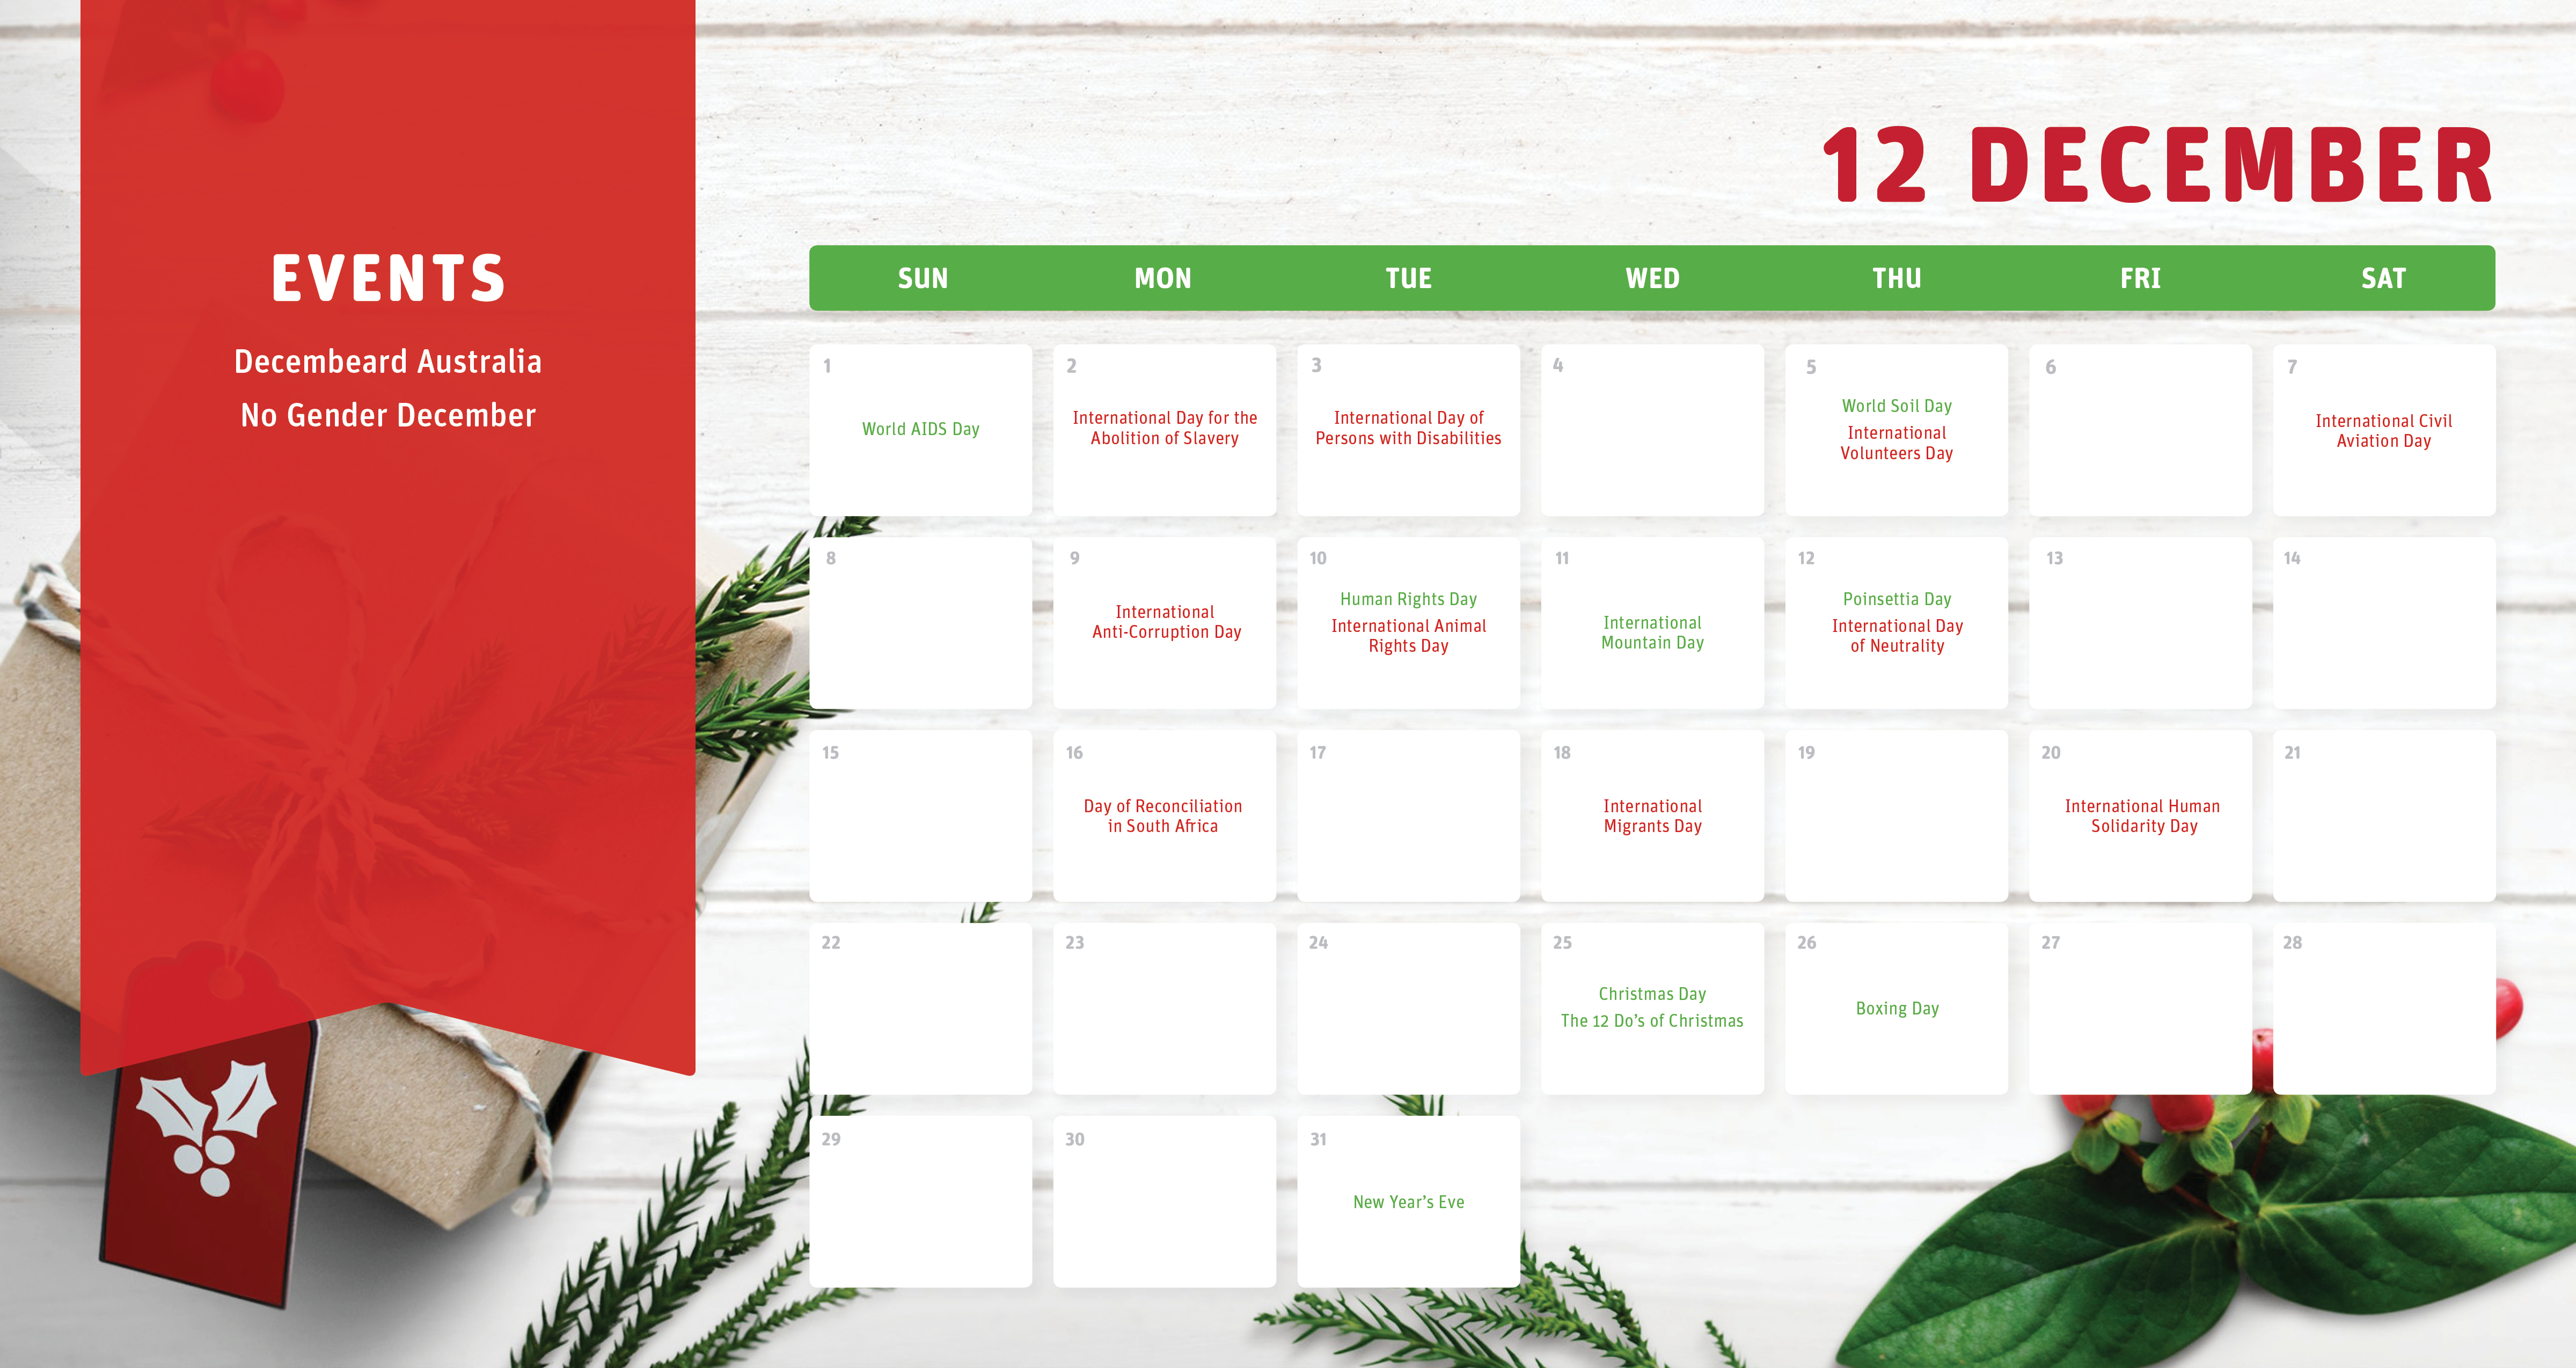 [DOWNLOAD] DECEMBER 2019 CALENDAR & 'HOW TO NEWSJACK THE NEWS' GUIDE